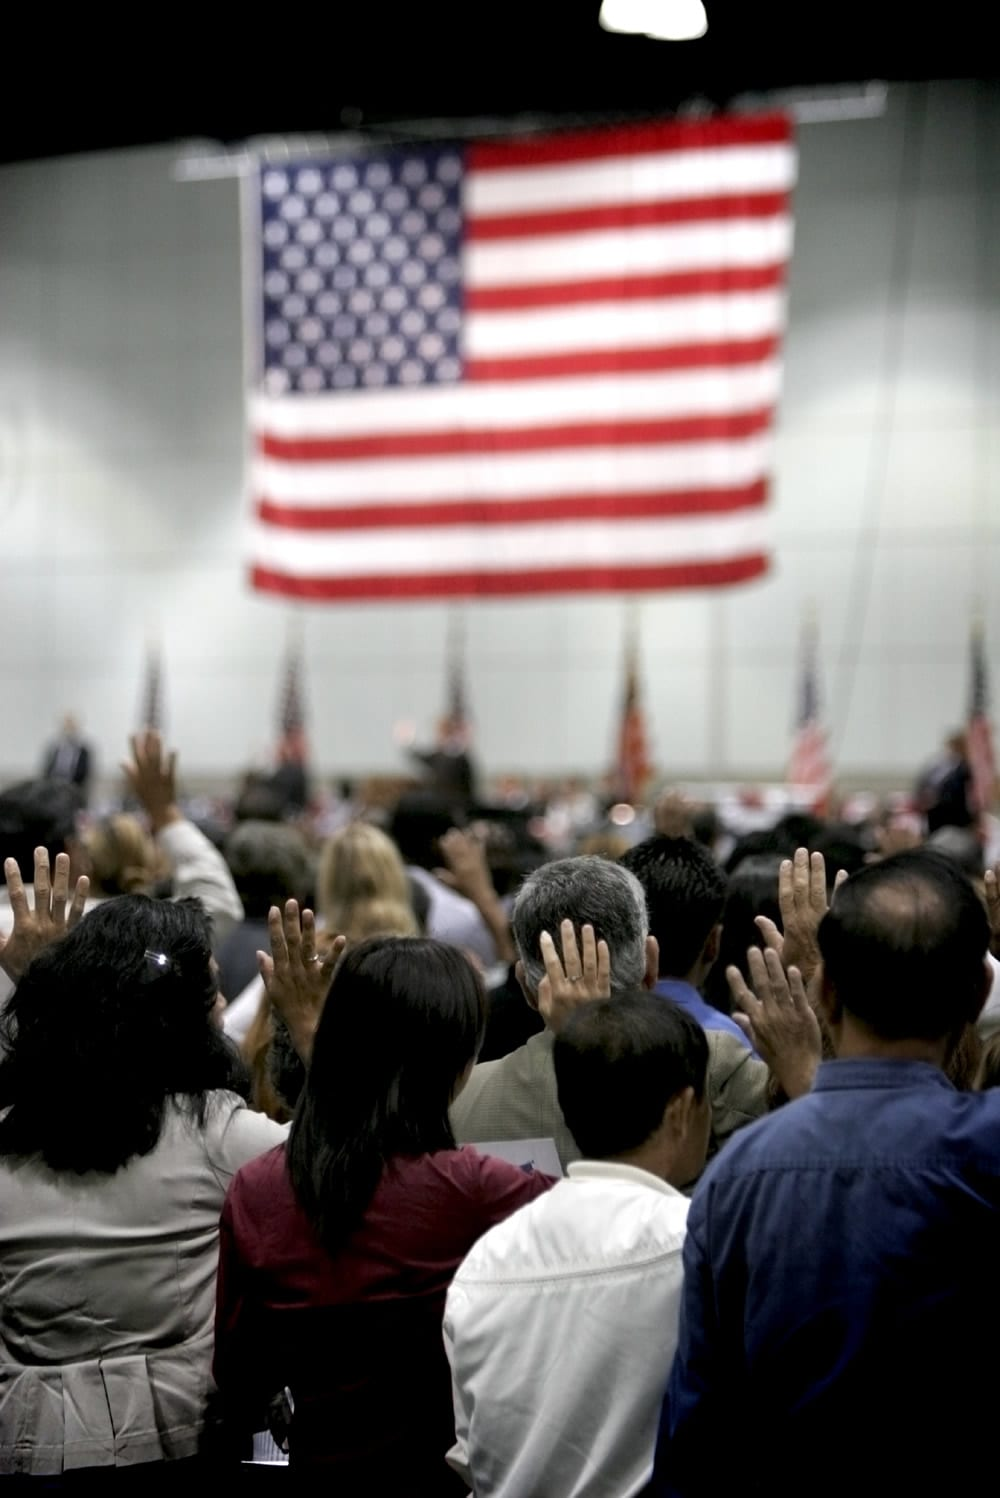 U.S. citizenship interview people